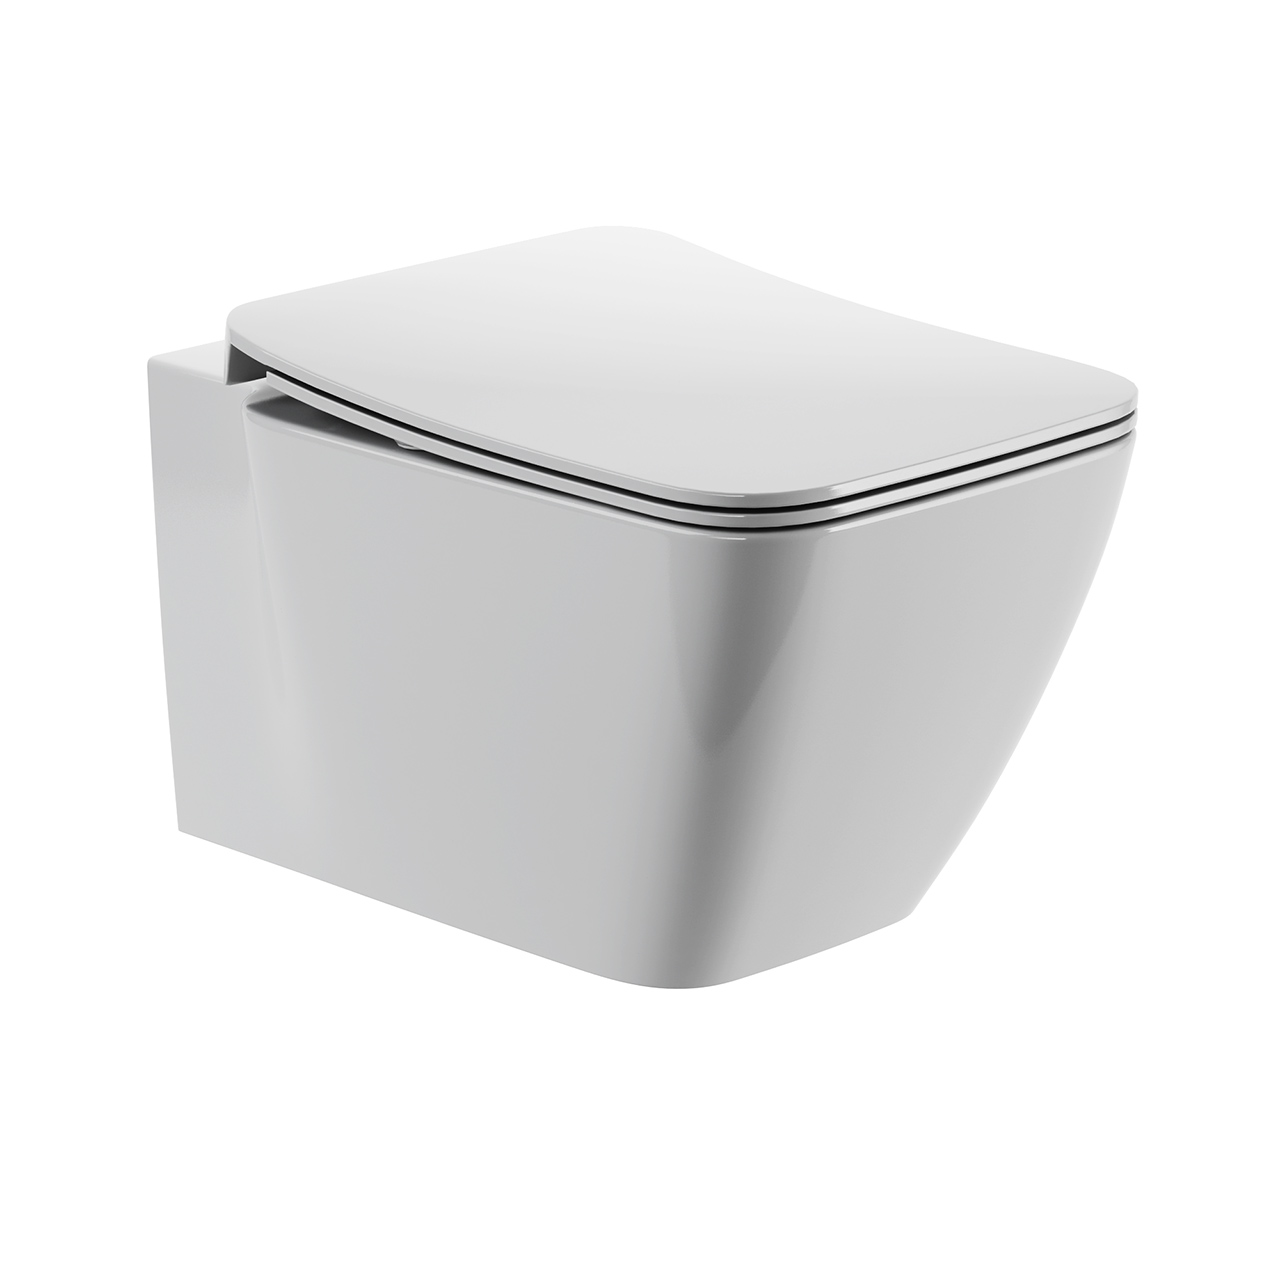 Strada II Toilet Wall-hung by Ideal Standard